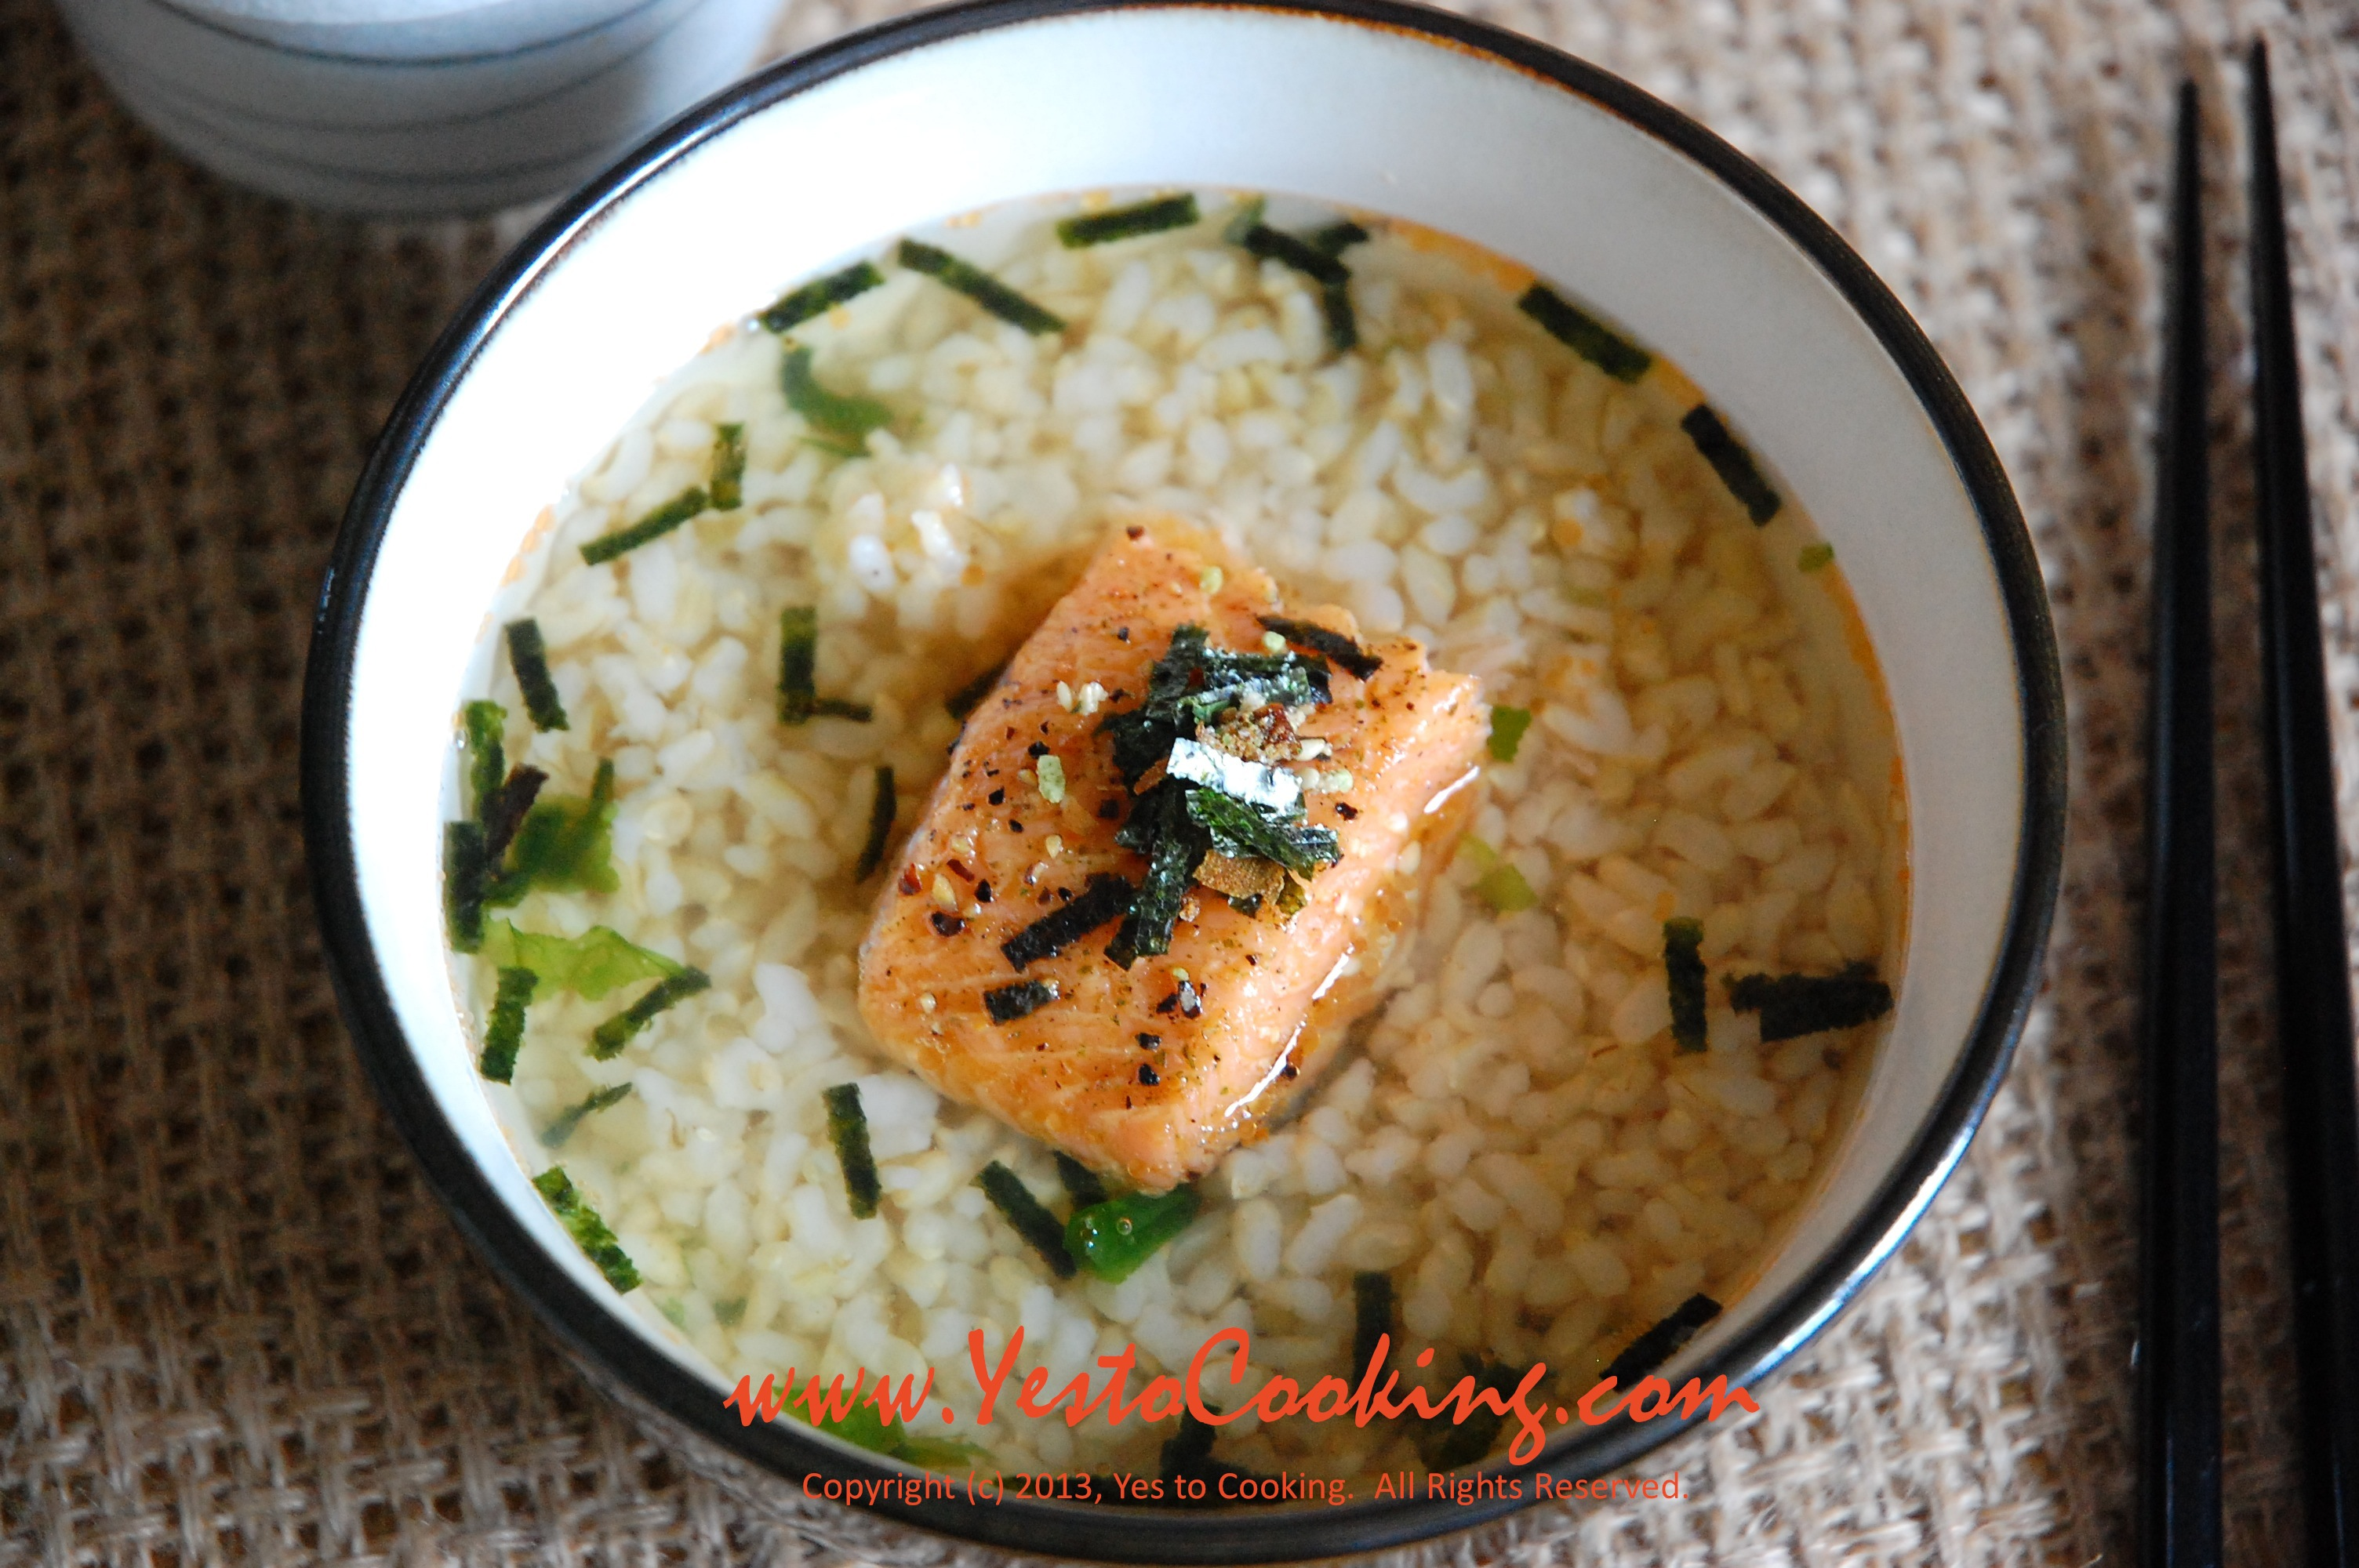 Chazuke: Oolong Tea With Rice And Salmon Yes To Cooking